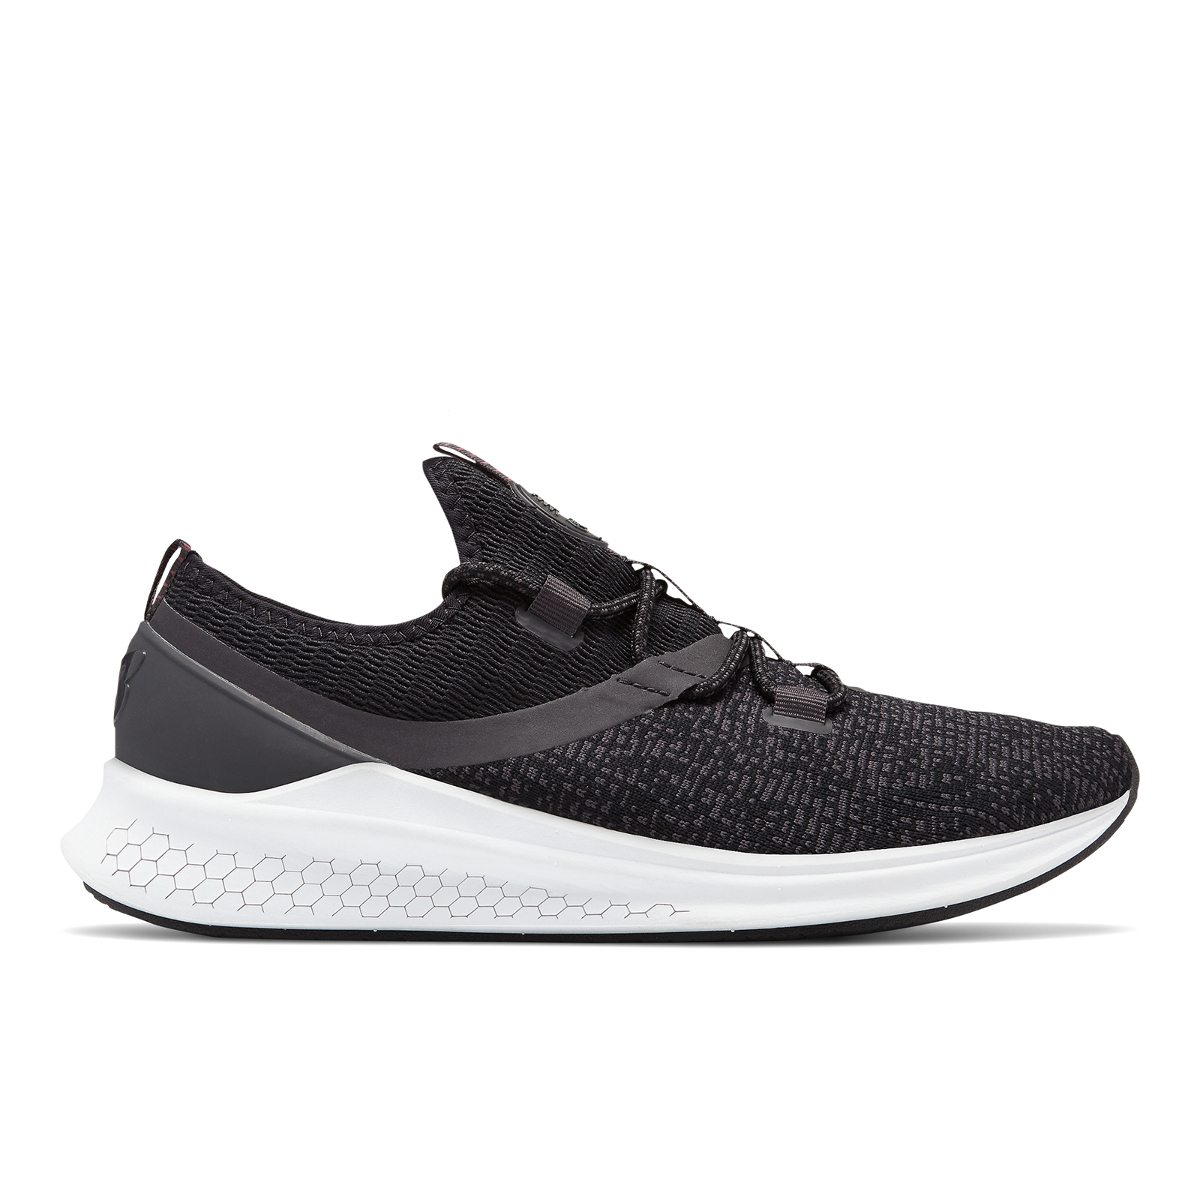 New Balance Women's Fresh Foam Lazr Sport Running Shoes - Black, 10